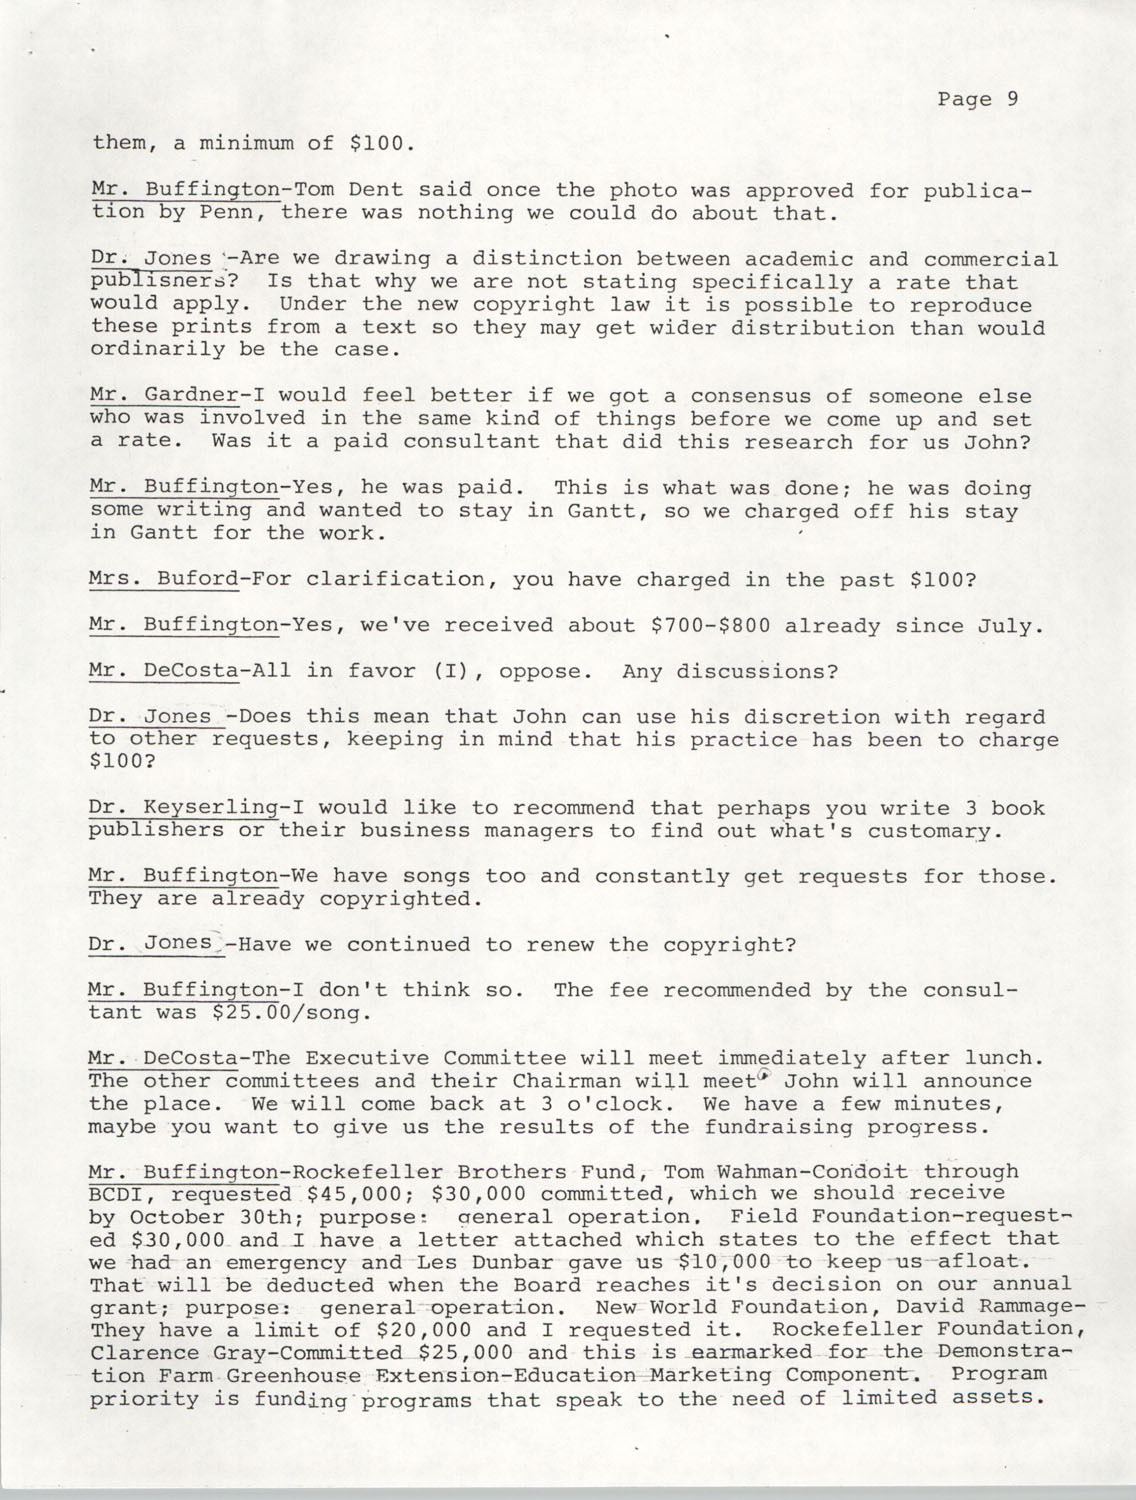 Minutes, Annual Board Meeting, Penn Community Services, October 22, 1977, Page 9